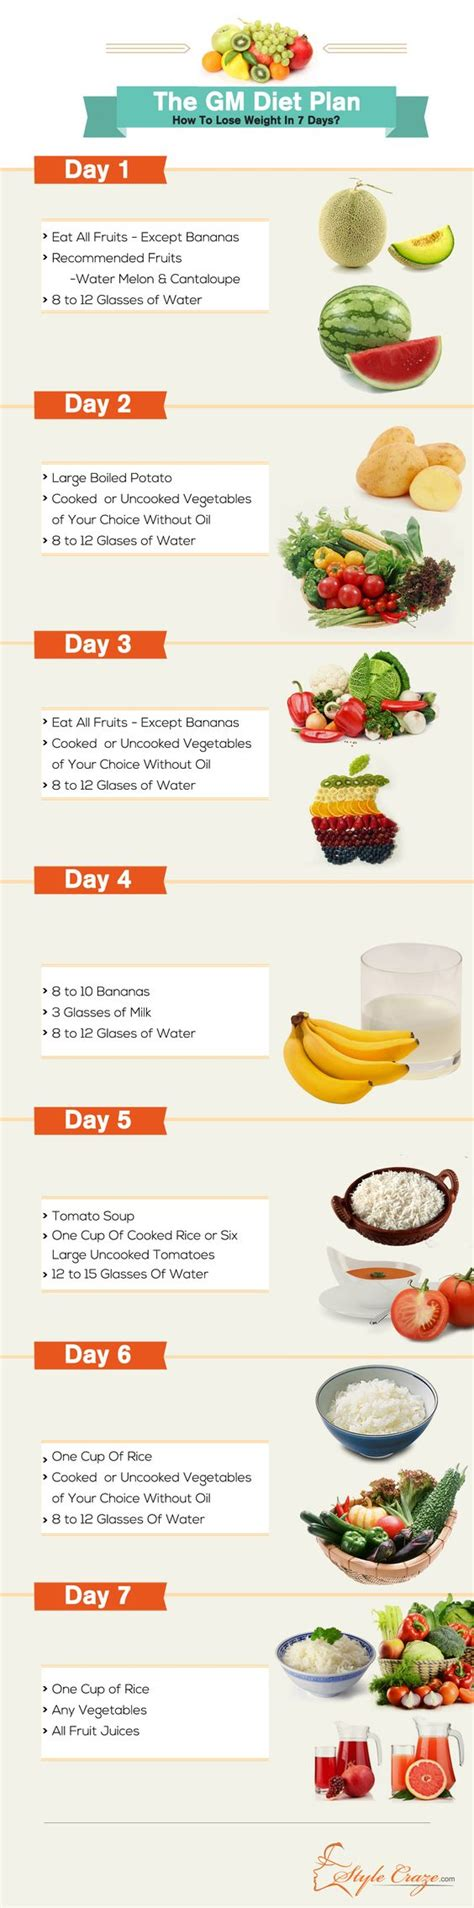 Detox Week Plan by The Gm Diet Plan How To Lose Weight In Just 7 Days